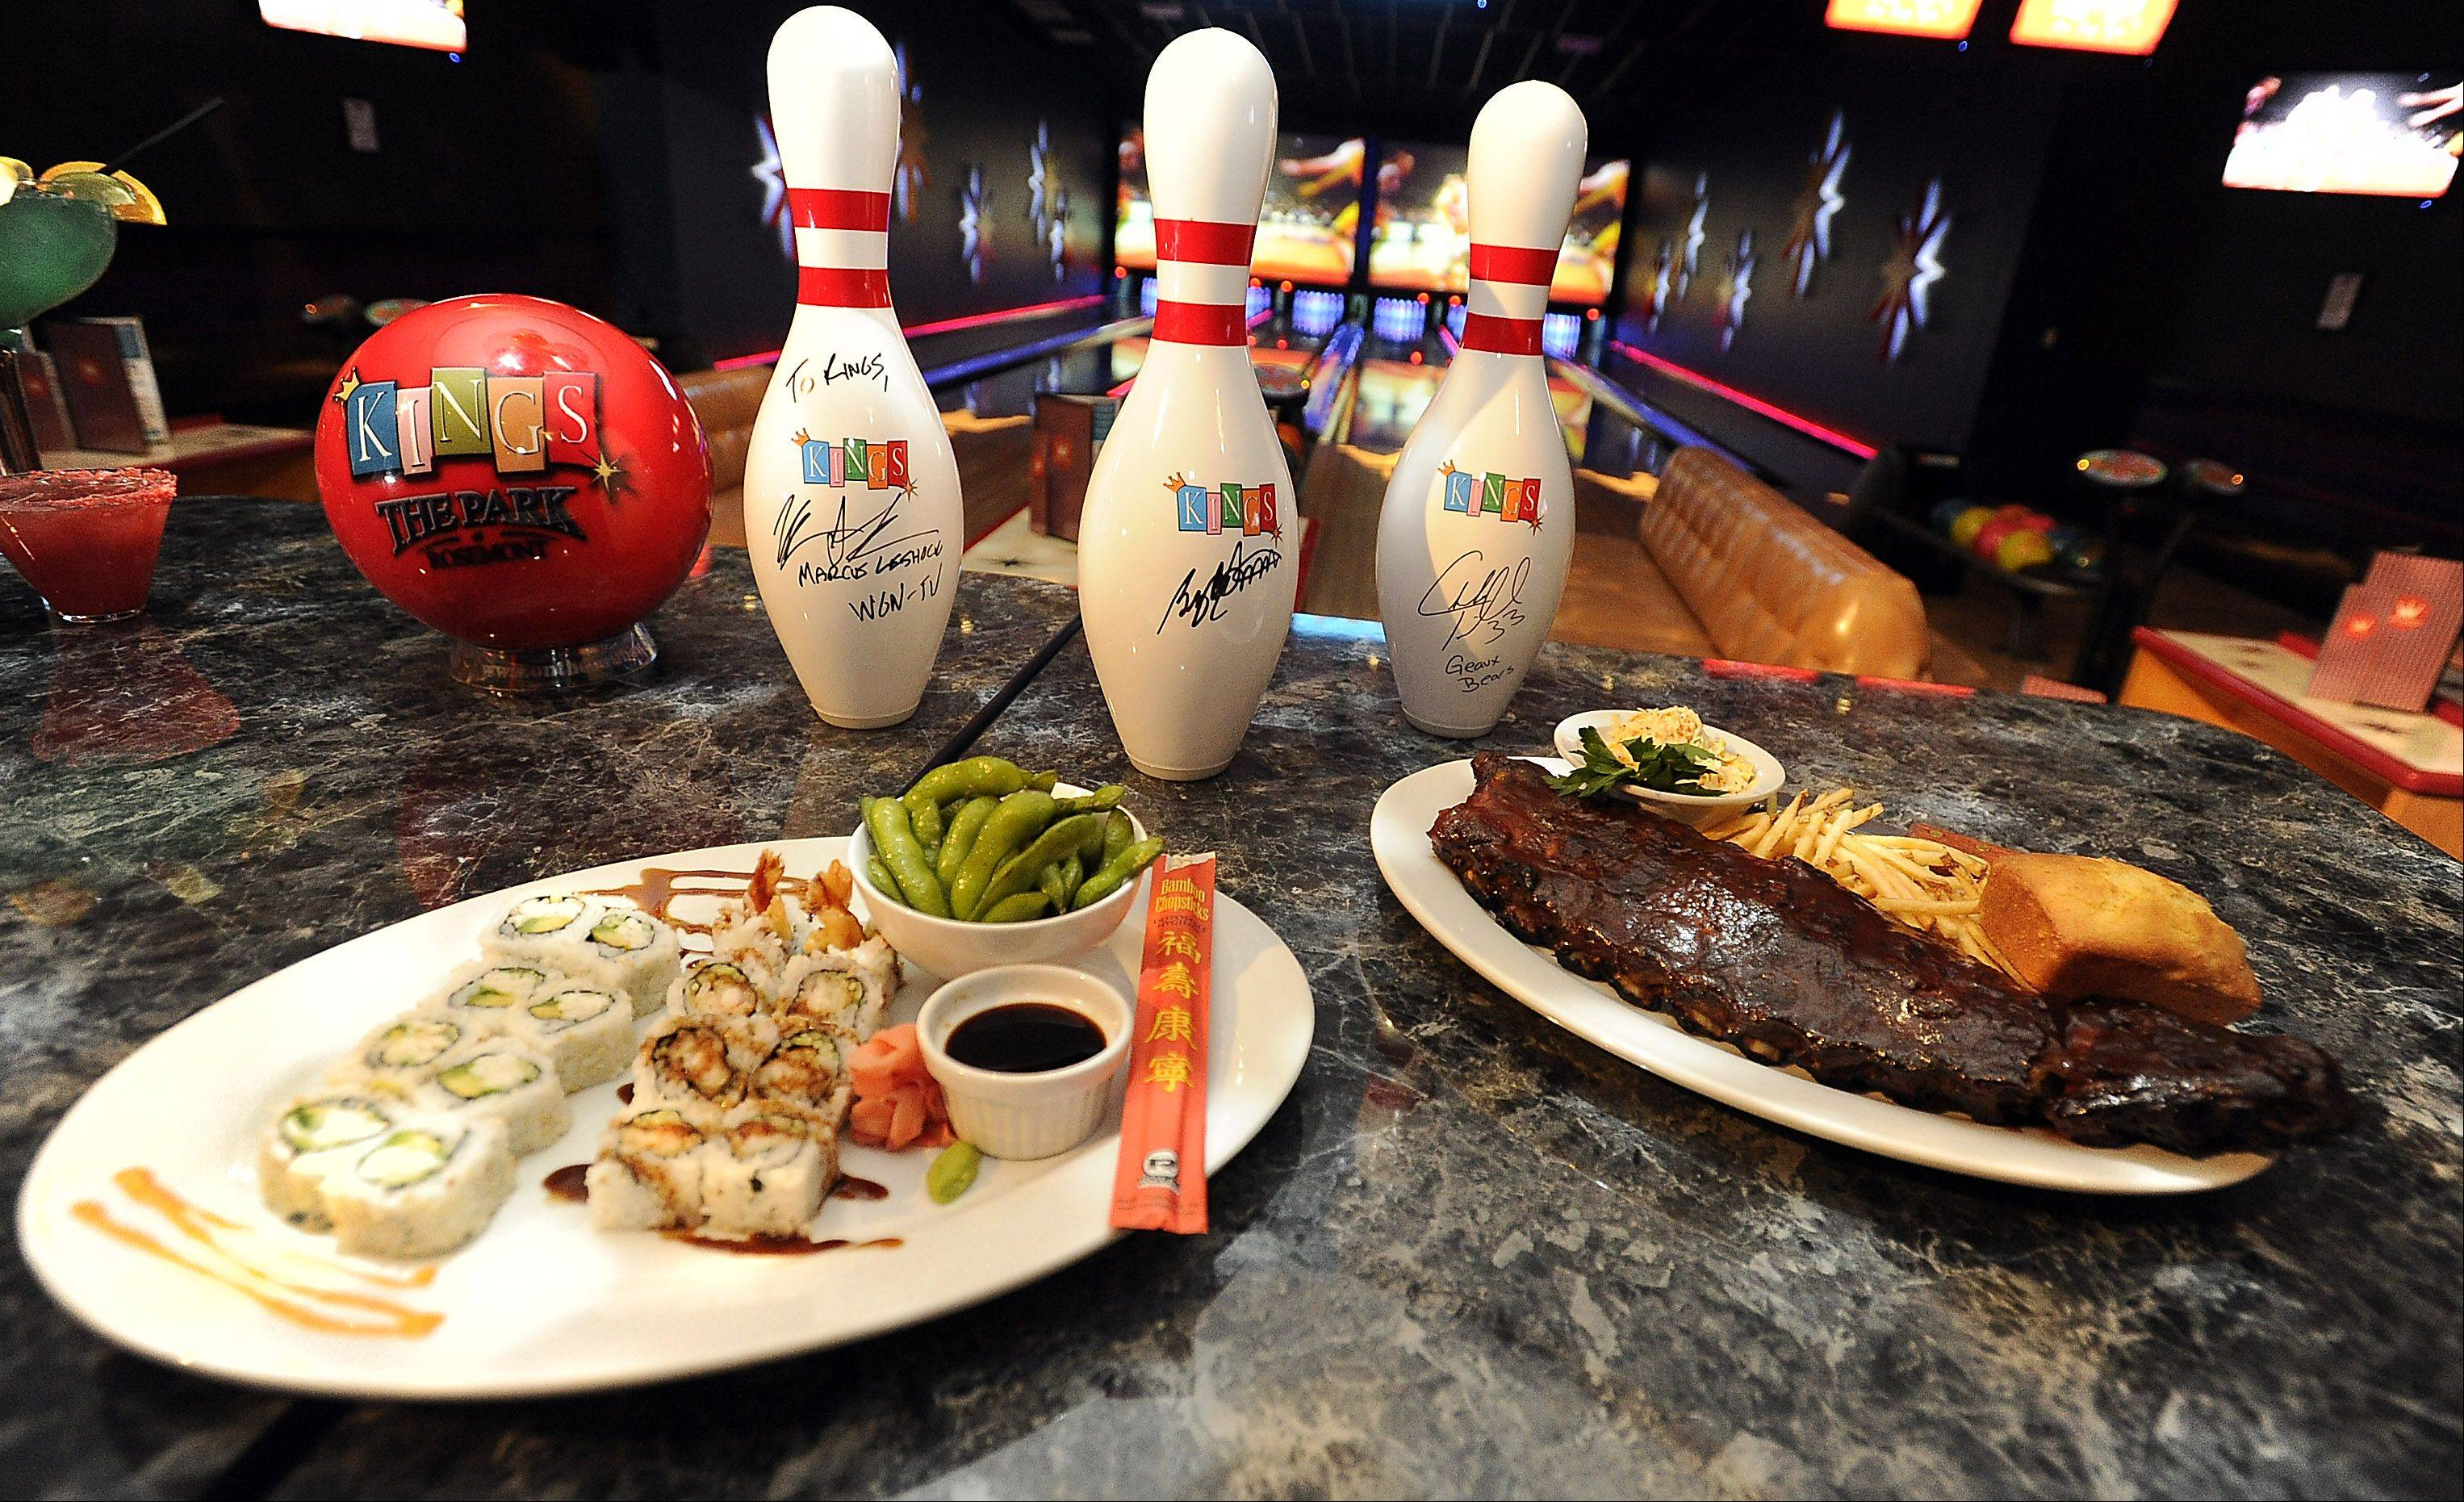 Kings Lanes in Rosemont serves up food options like the house smoked baby back ribs and the sushi sampler.